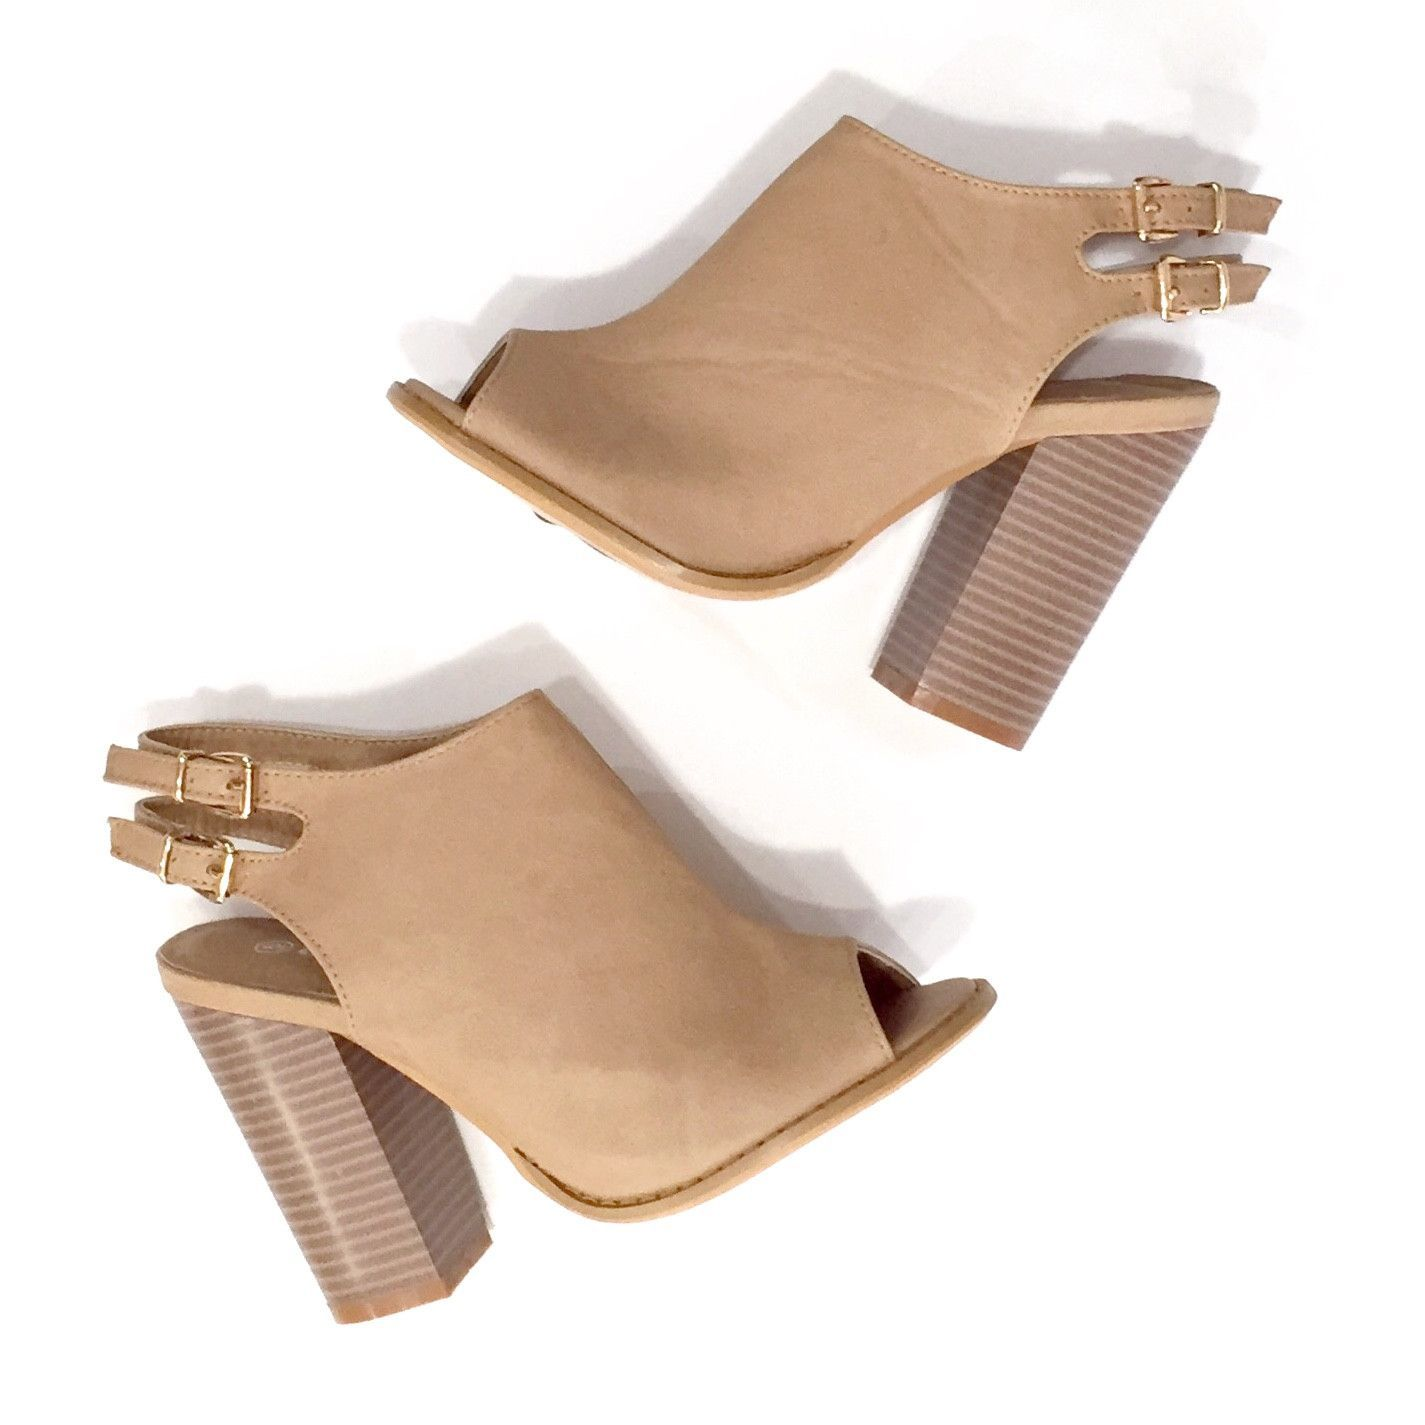 My Delicious Shoes - Delicious Women Wedge Shoes Open Toe